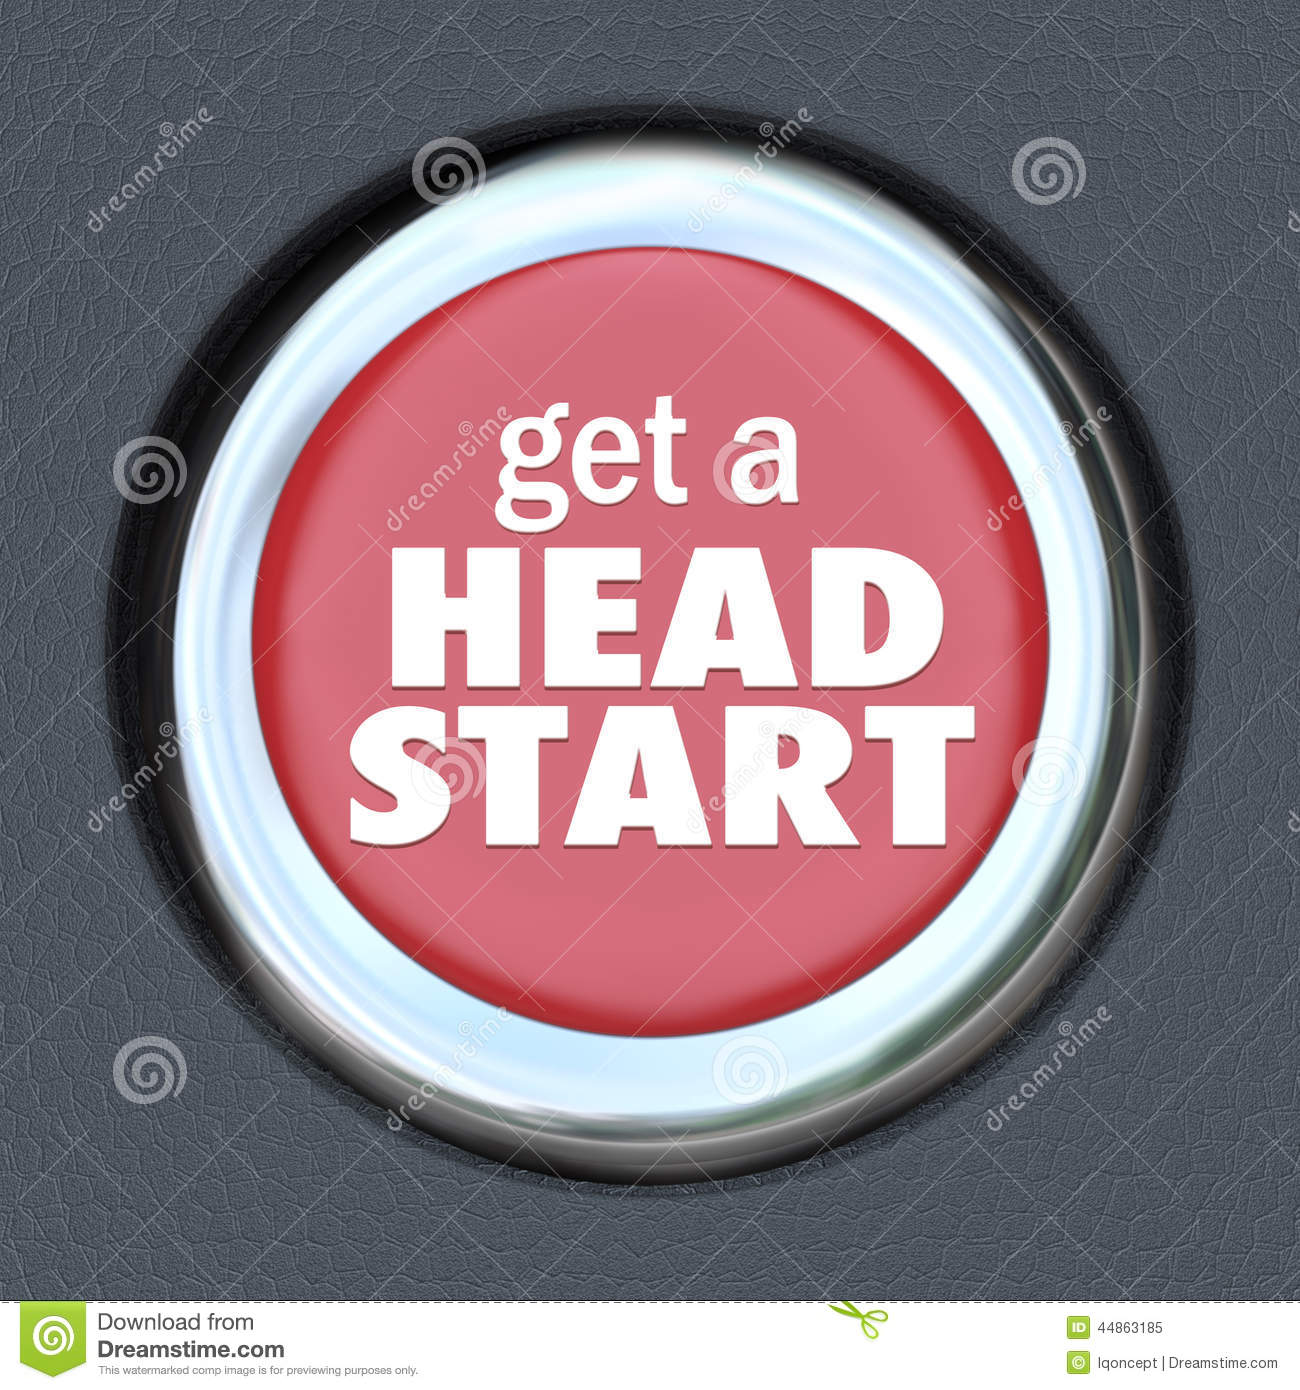 Get Head Start Red Button Competitive Advantage Early Edge